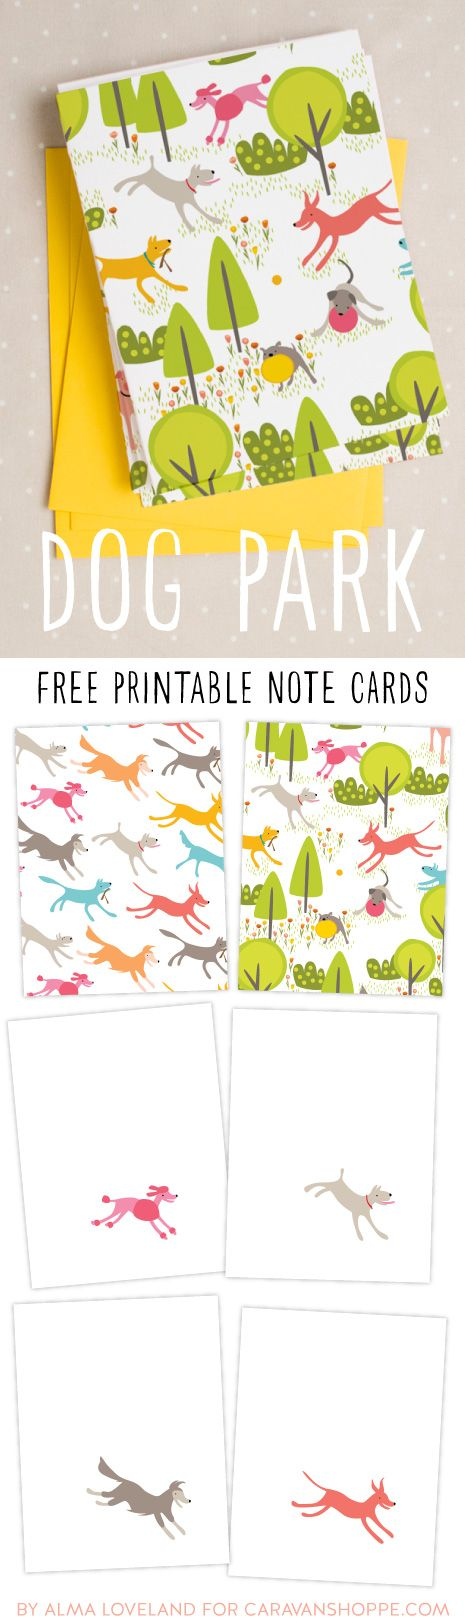 FREE printable doggy note cards! Download once and print again and again!